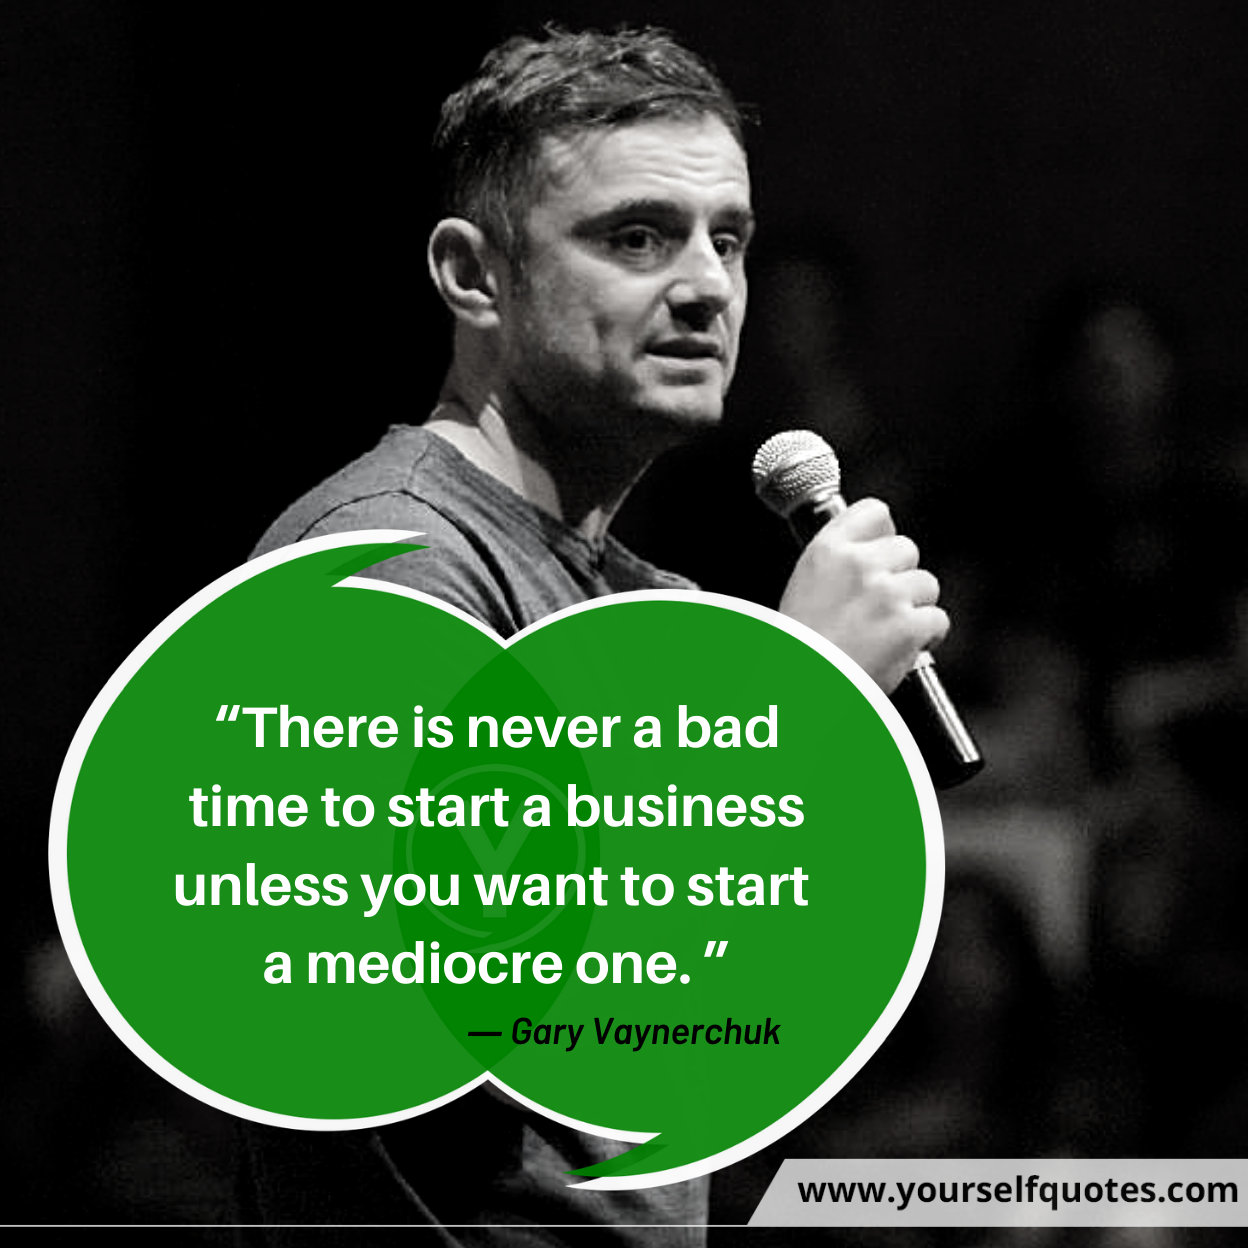 Quotes by Gary Vaynerchuk